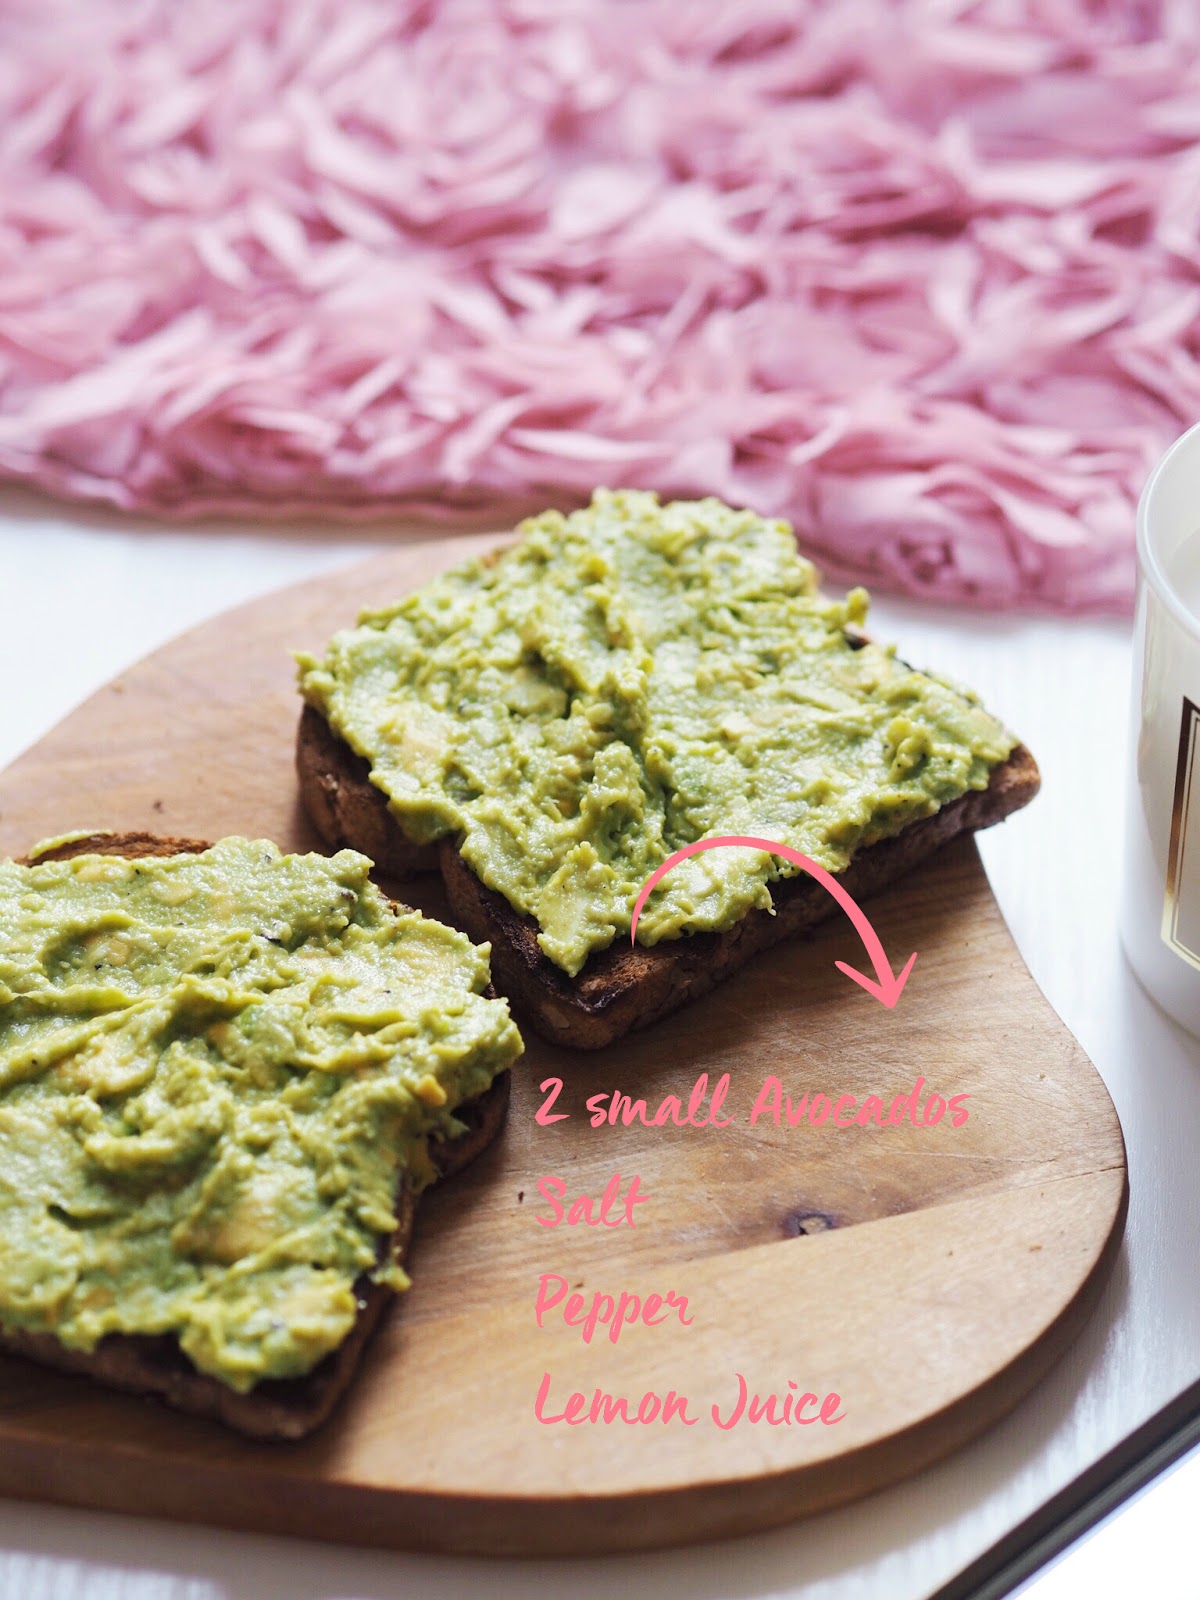 avocado toast food bloggers avo food bloggers quick and easy vegan snack ideas healthy